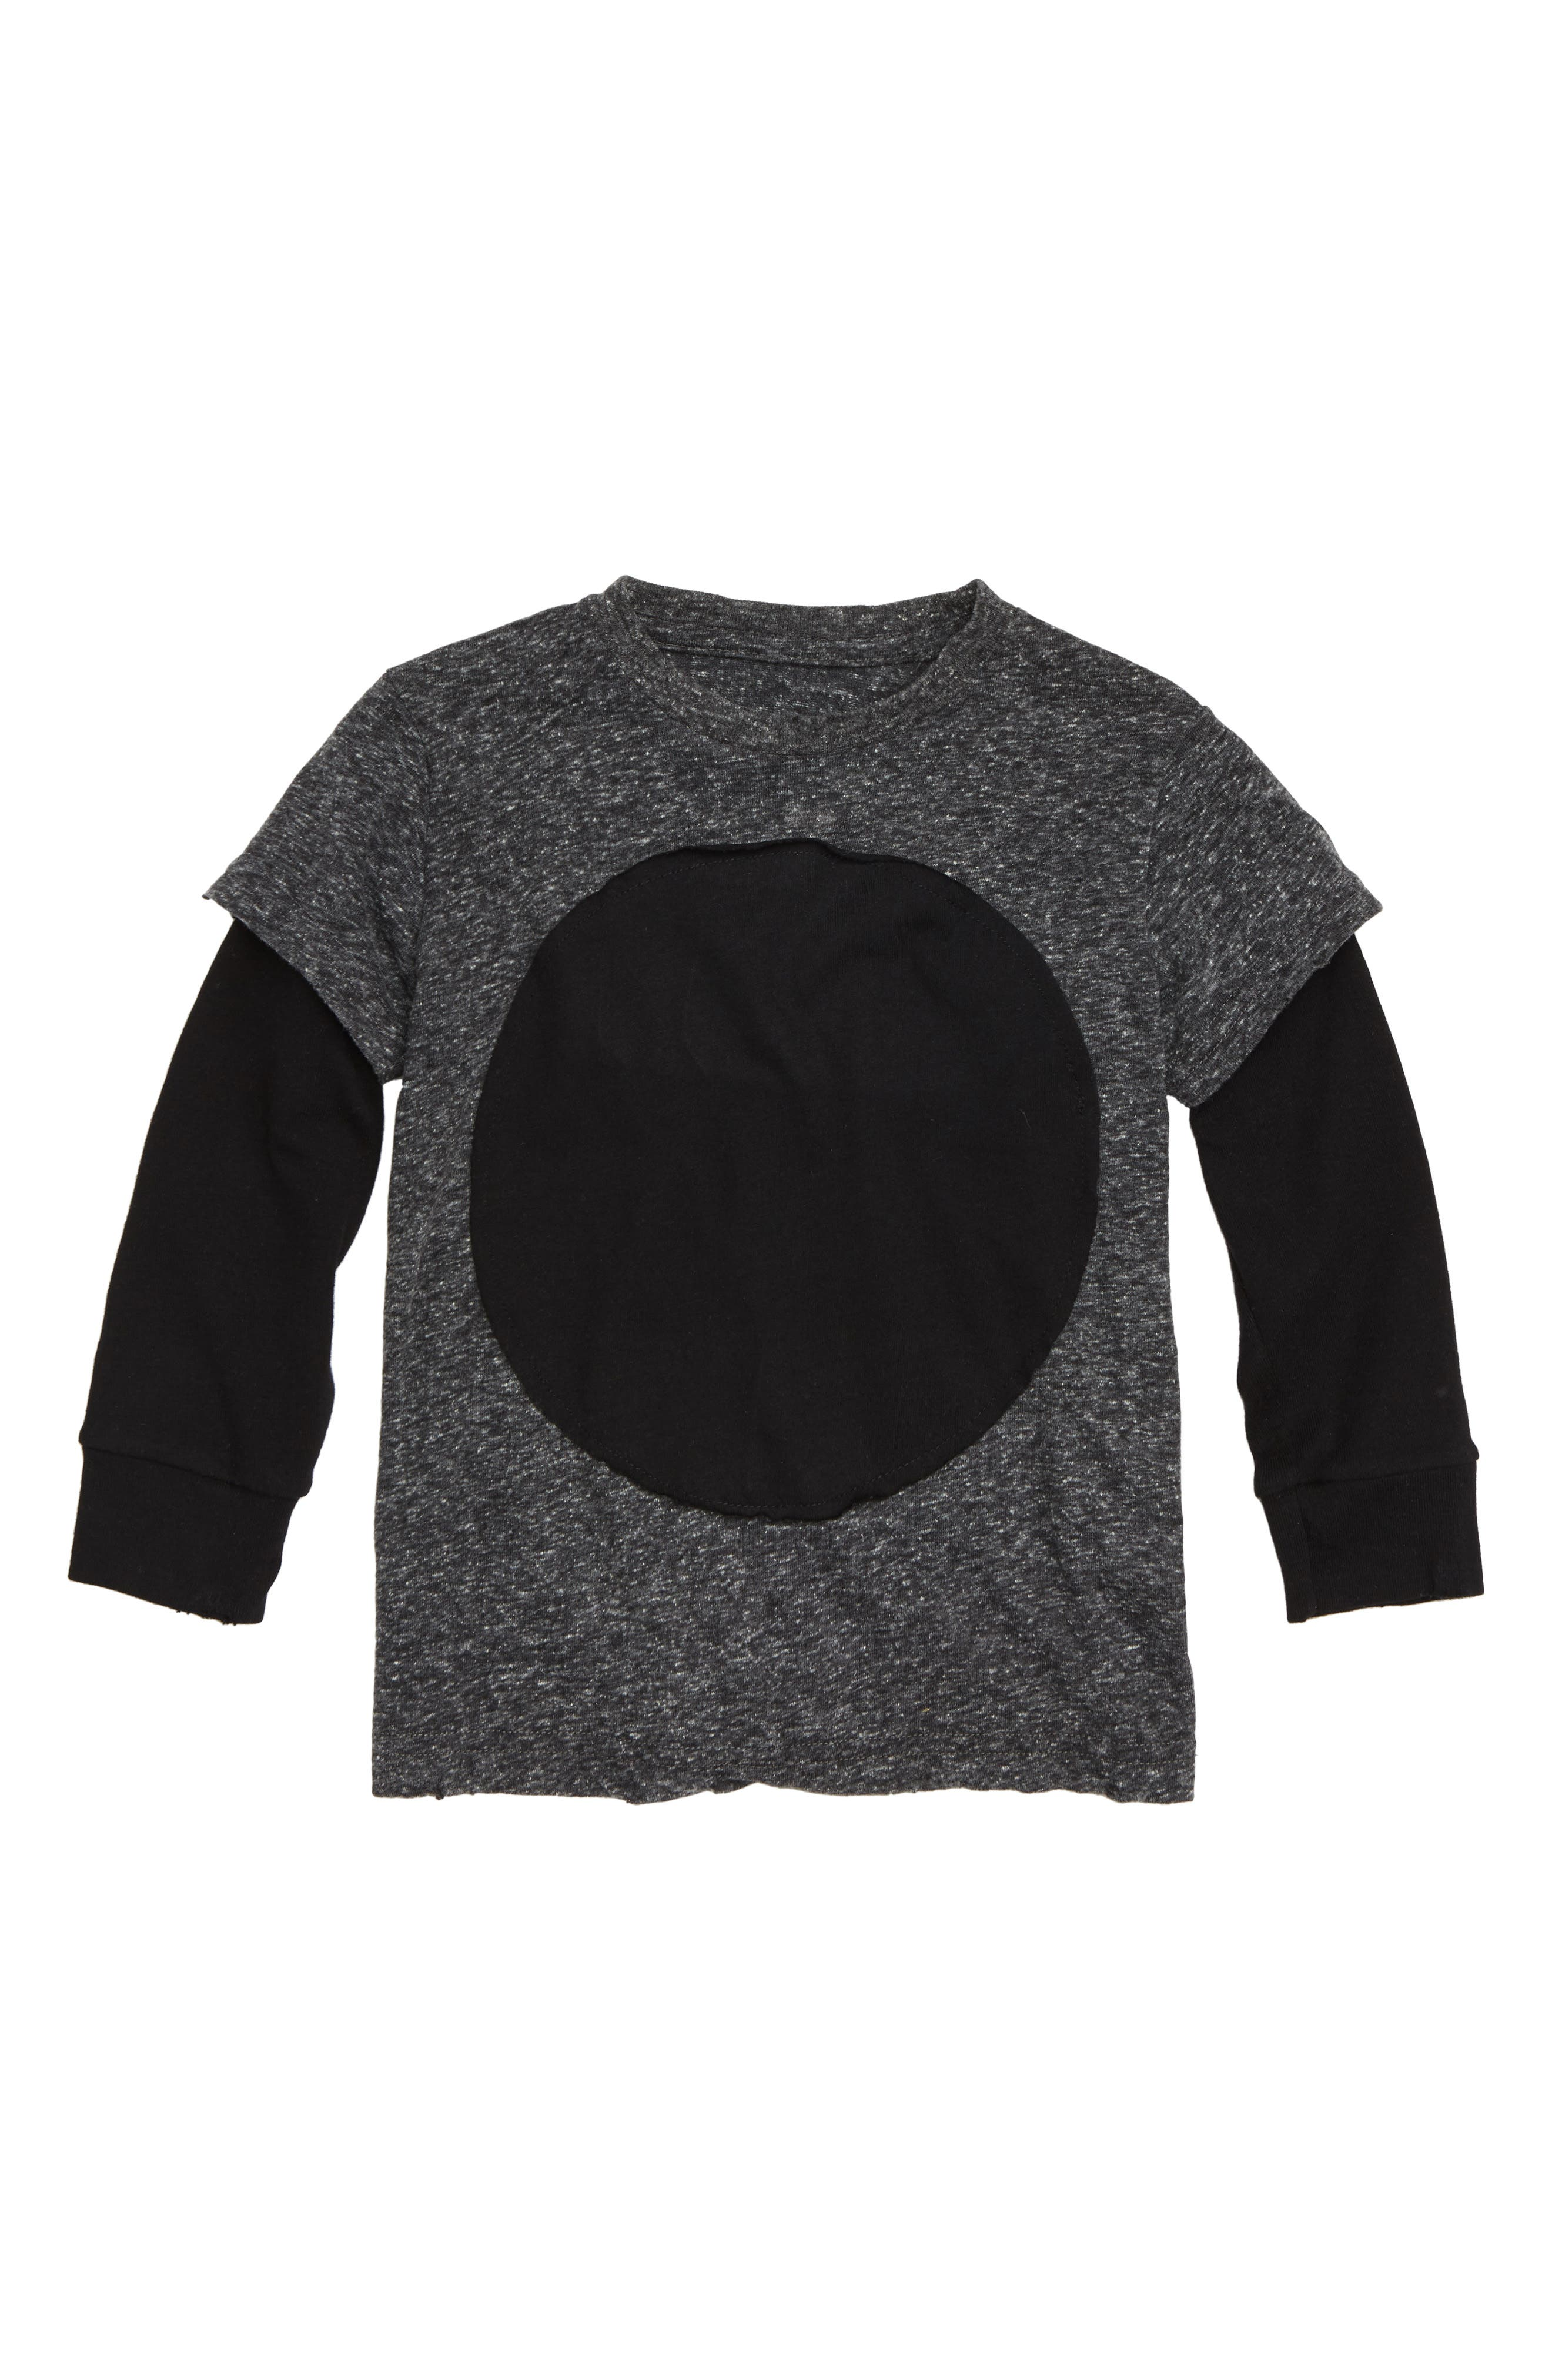 Circle Patch Tee,                         Main,                         color, 021